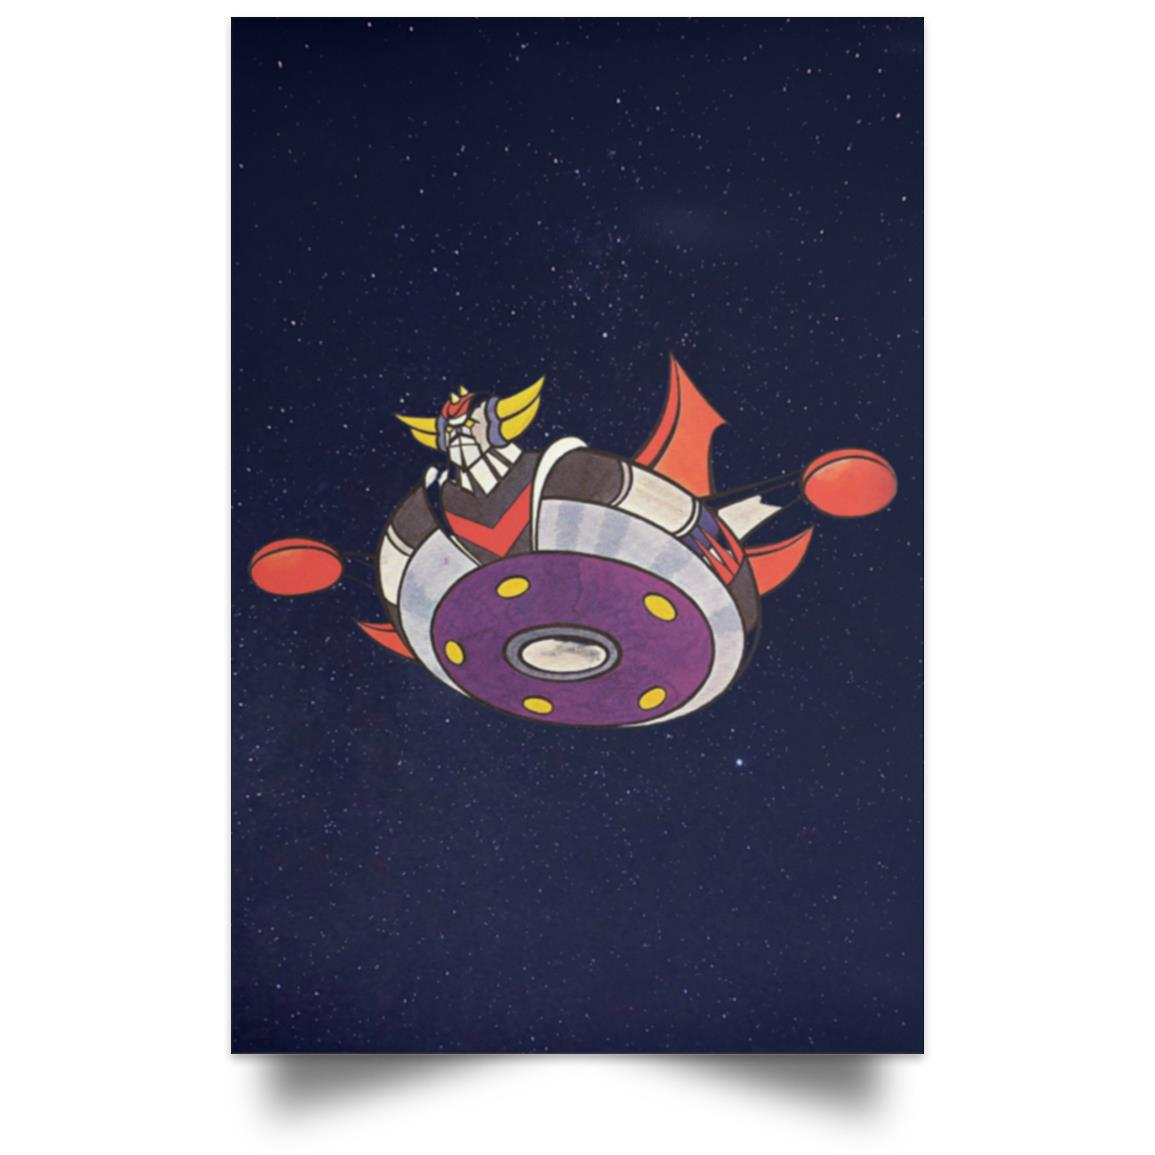 GRENDIZER UFO ROBOT IN SPACE POSTER 1